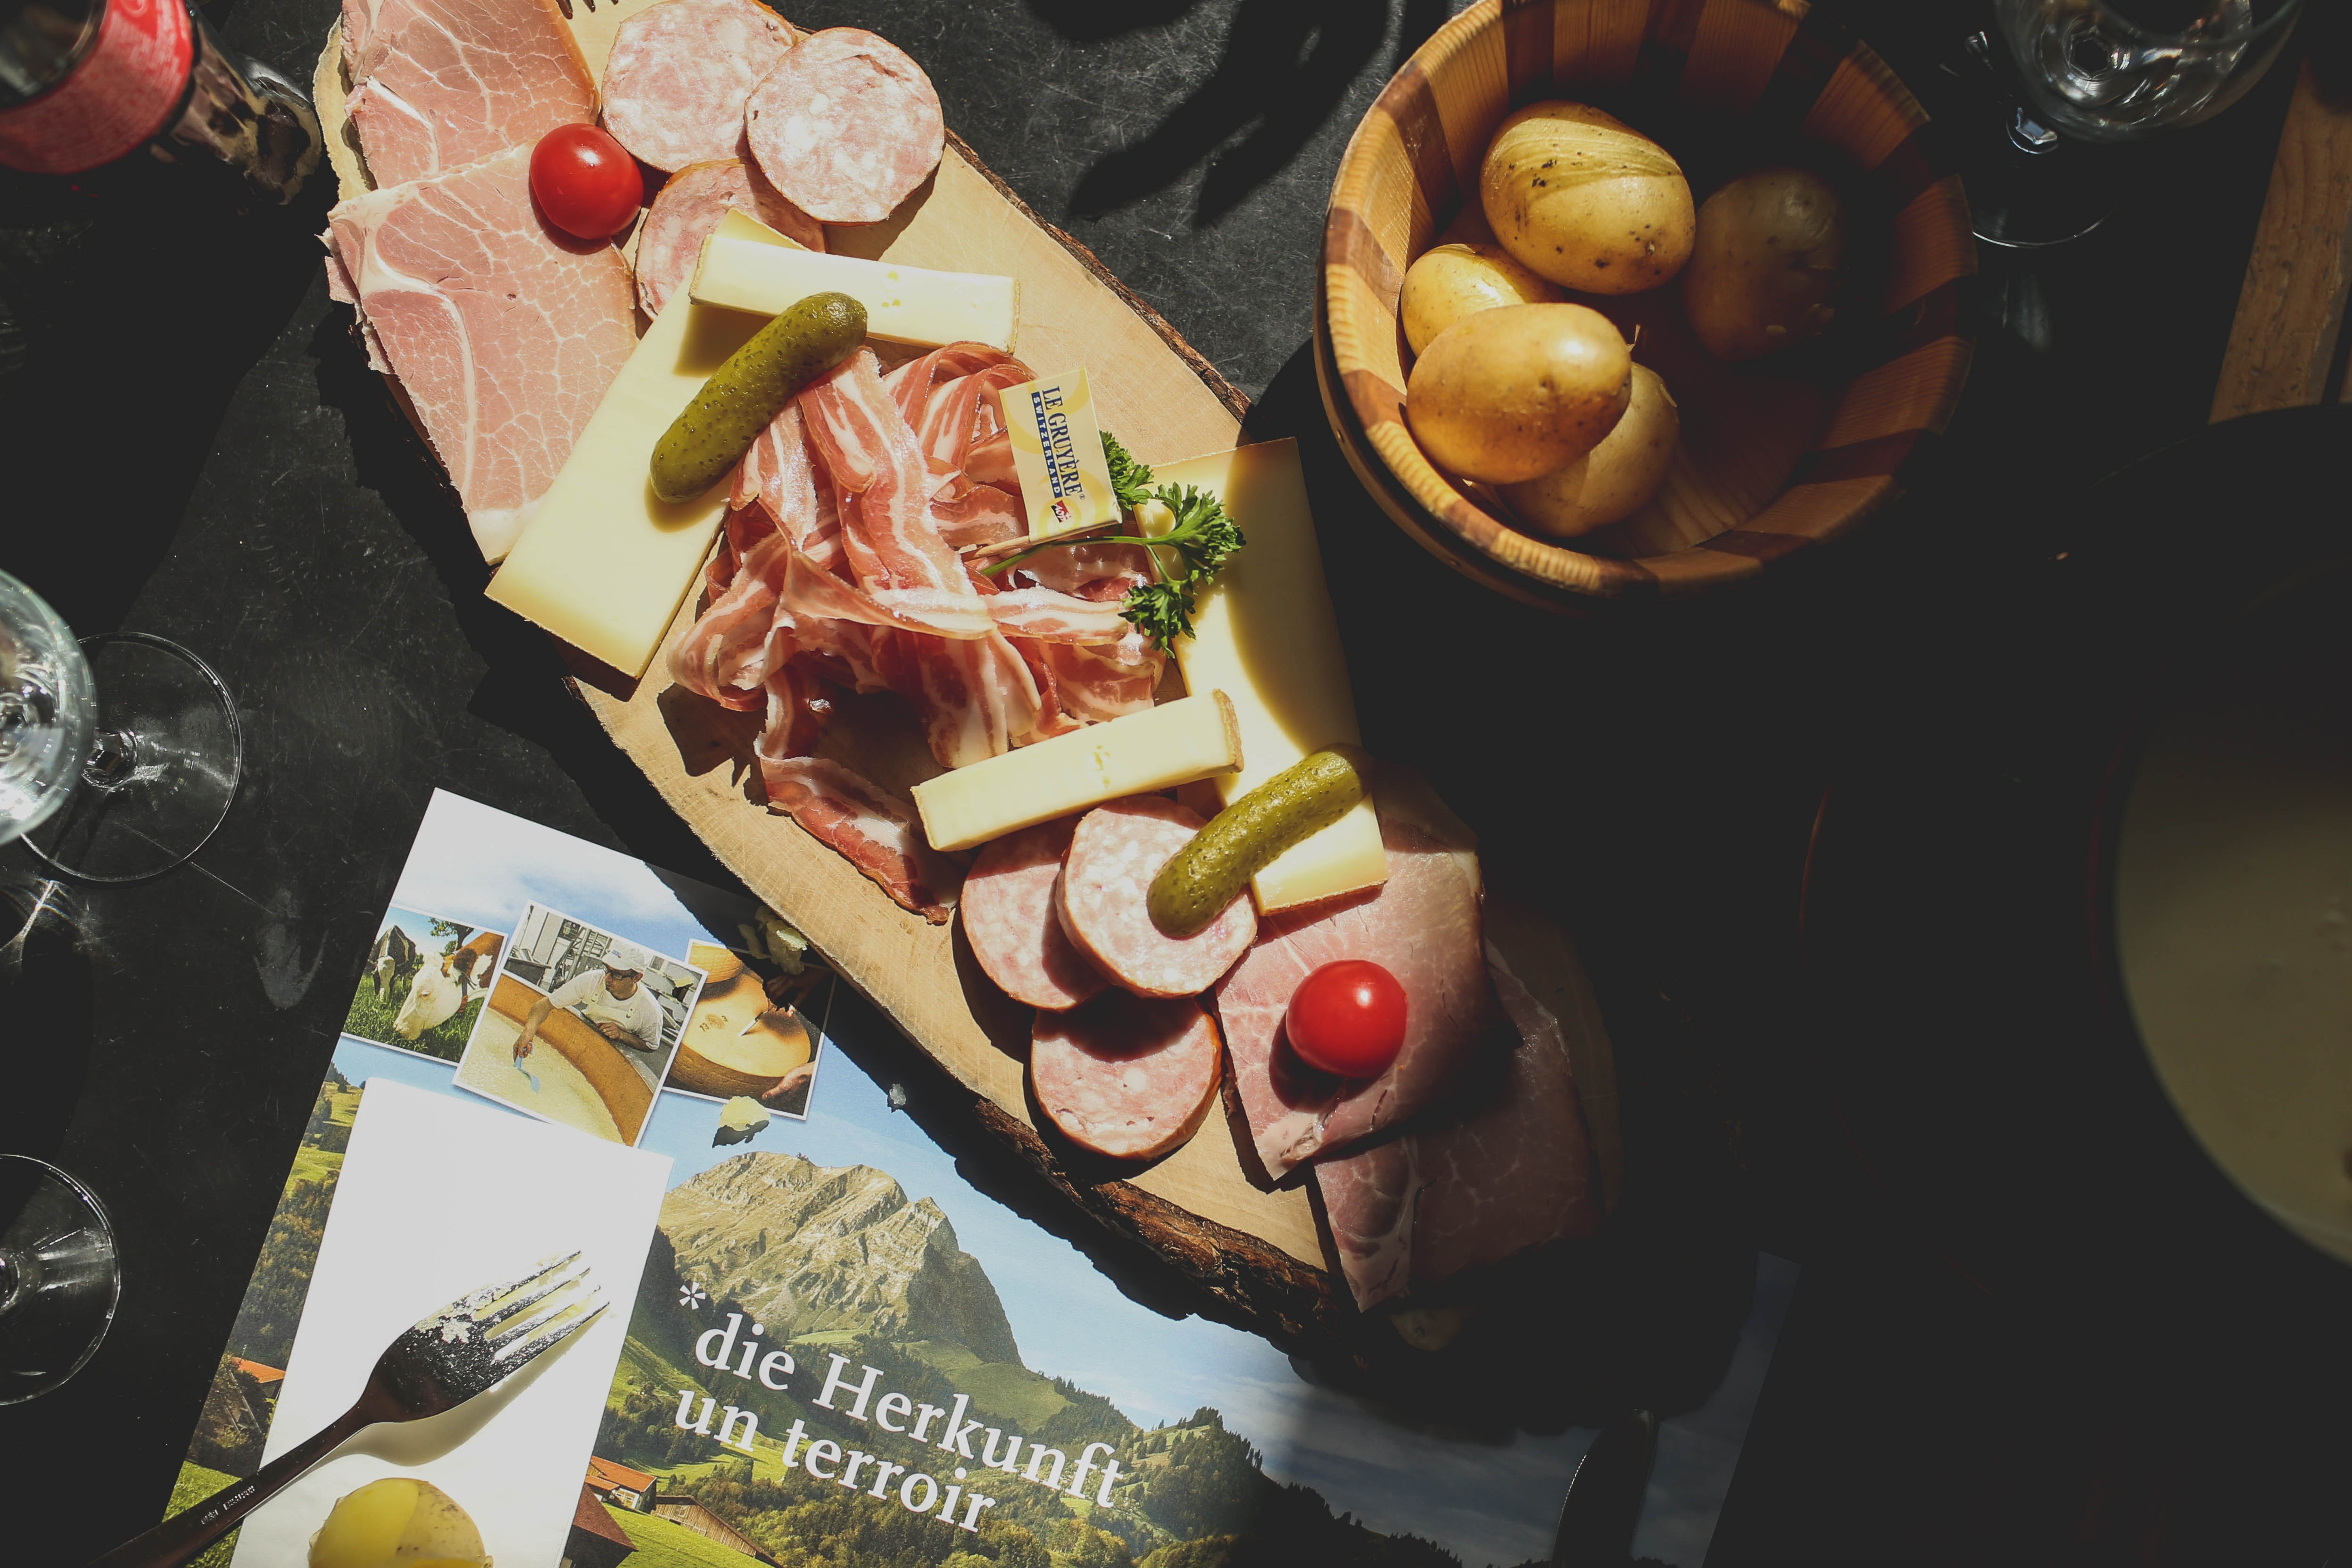 Find out about a local culture, Gruyères, Switzerland